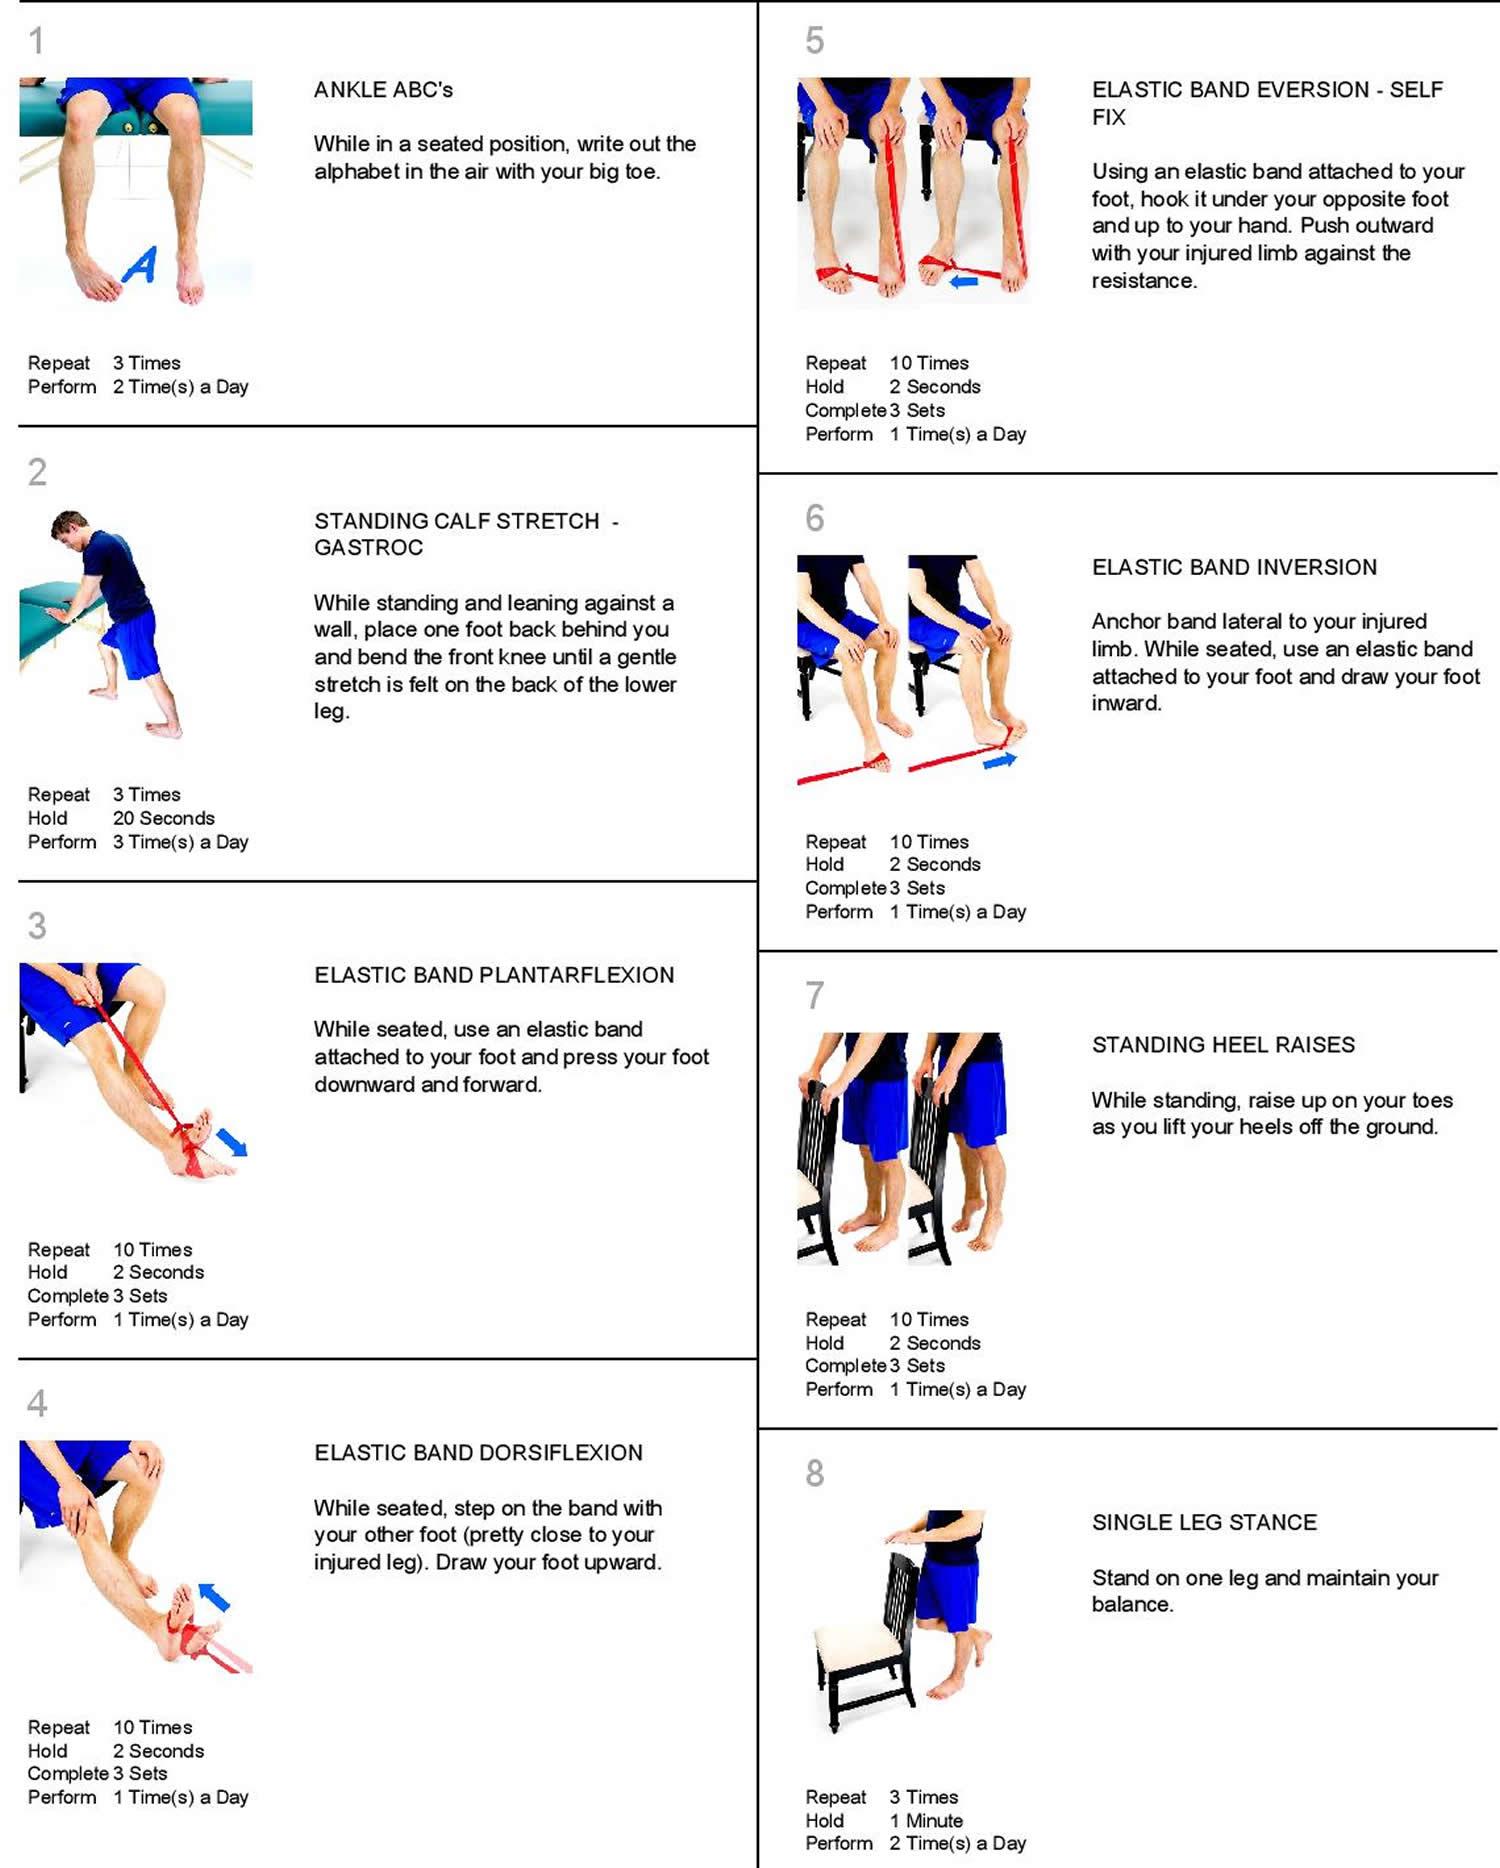 Assessments and Exercises for Ankle and Foot Health 👉 GMB Fitness